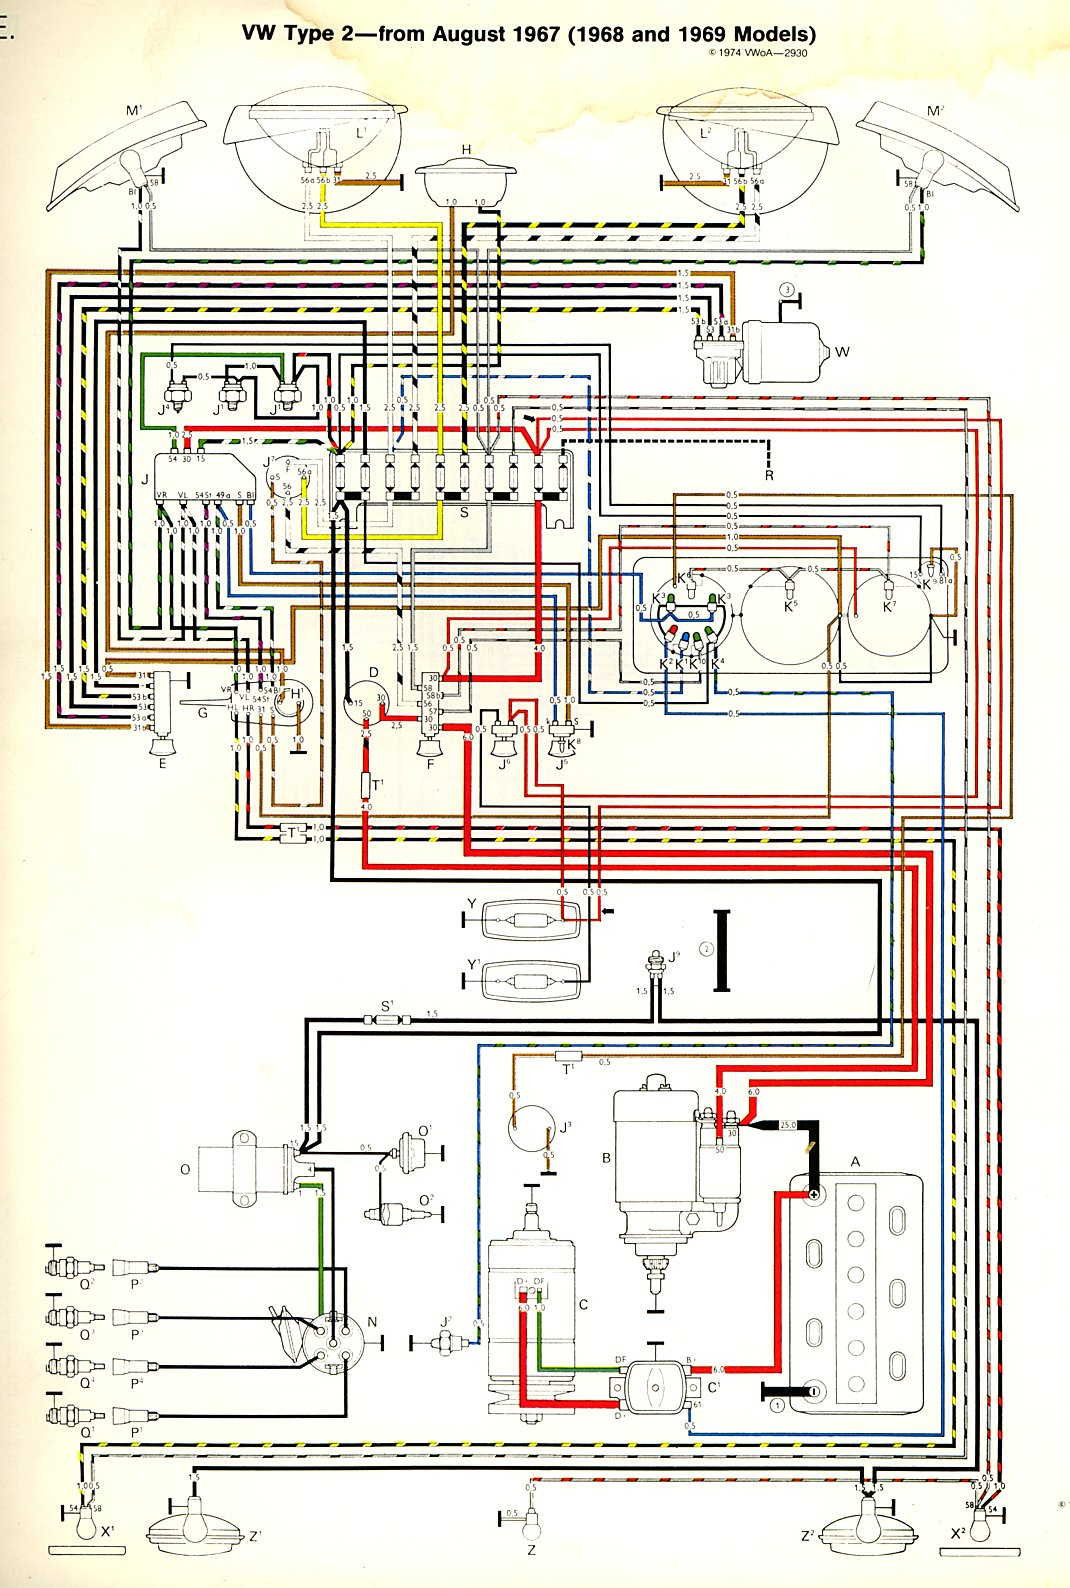 baybus_6869a 1968 69 bus wiring diagram thegoldenbug com 1971 vw bus wiring diagram at bakdesigns.co